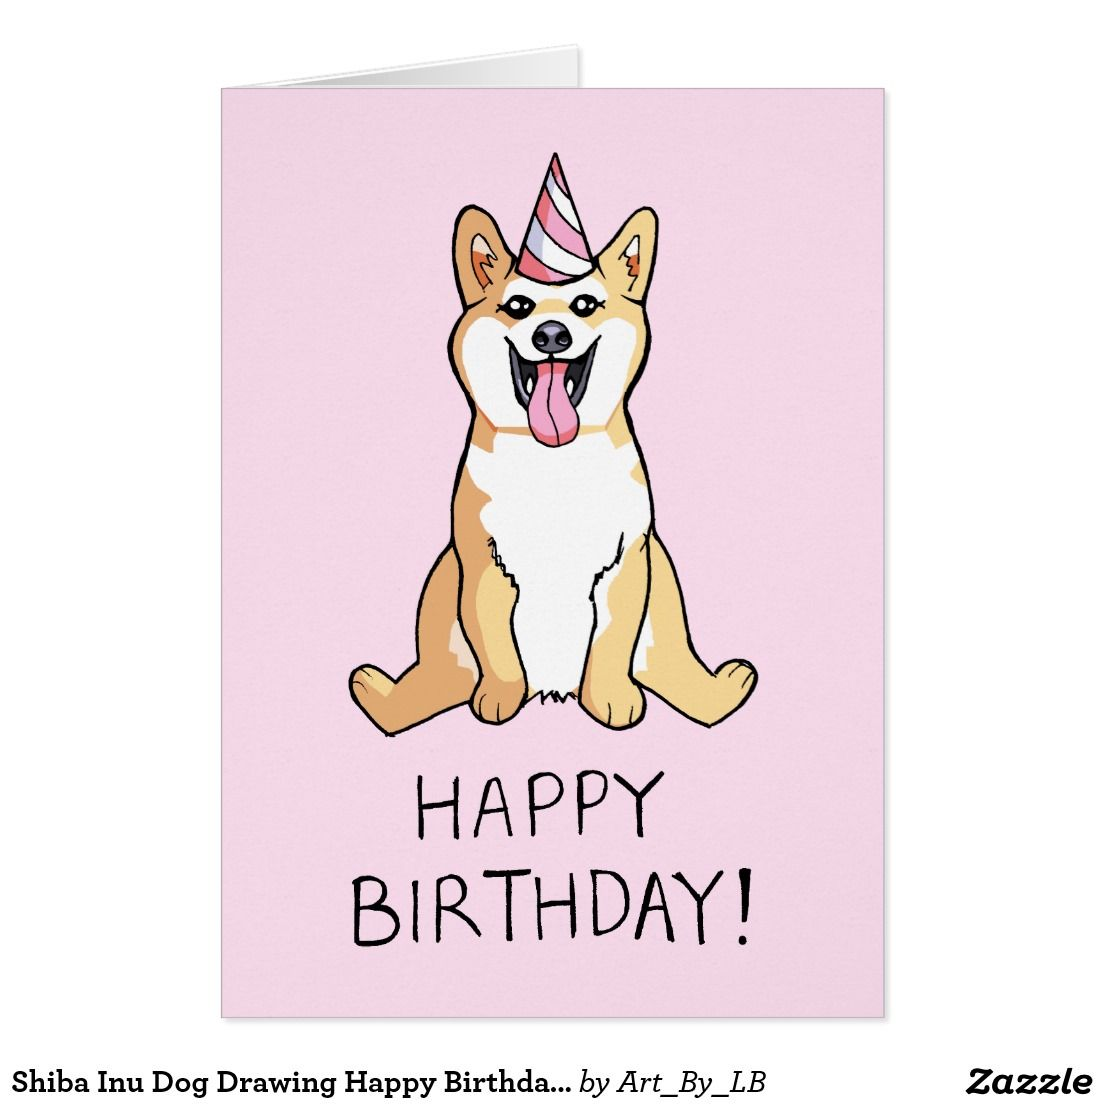 You Want A Shiba Inu Card For Birthday Right Dog Animal In Pink Party Hat Drawing Happy